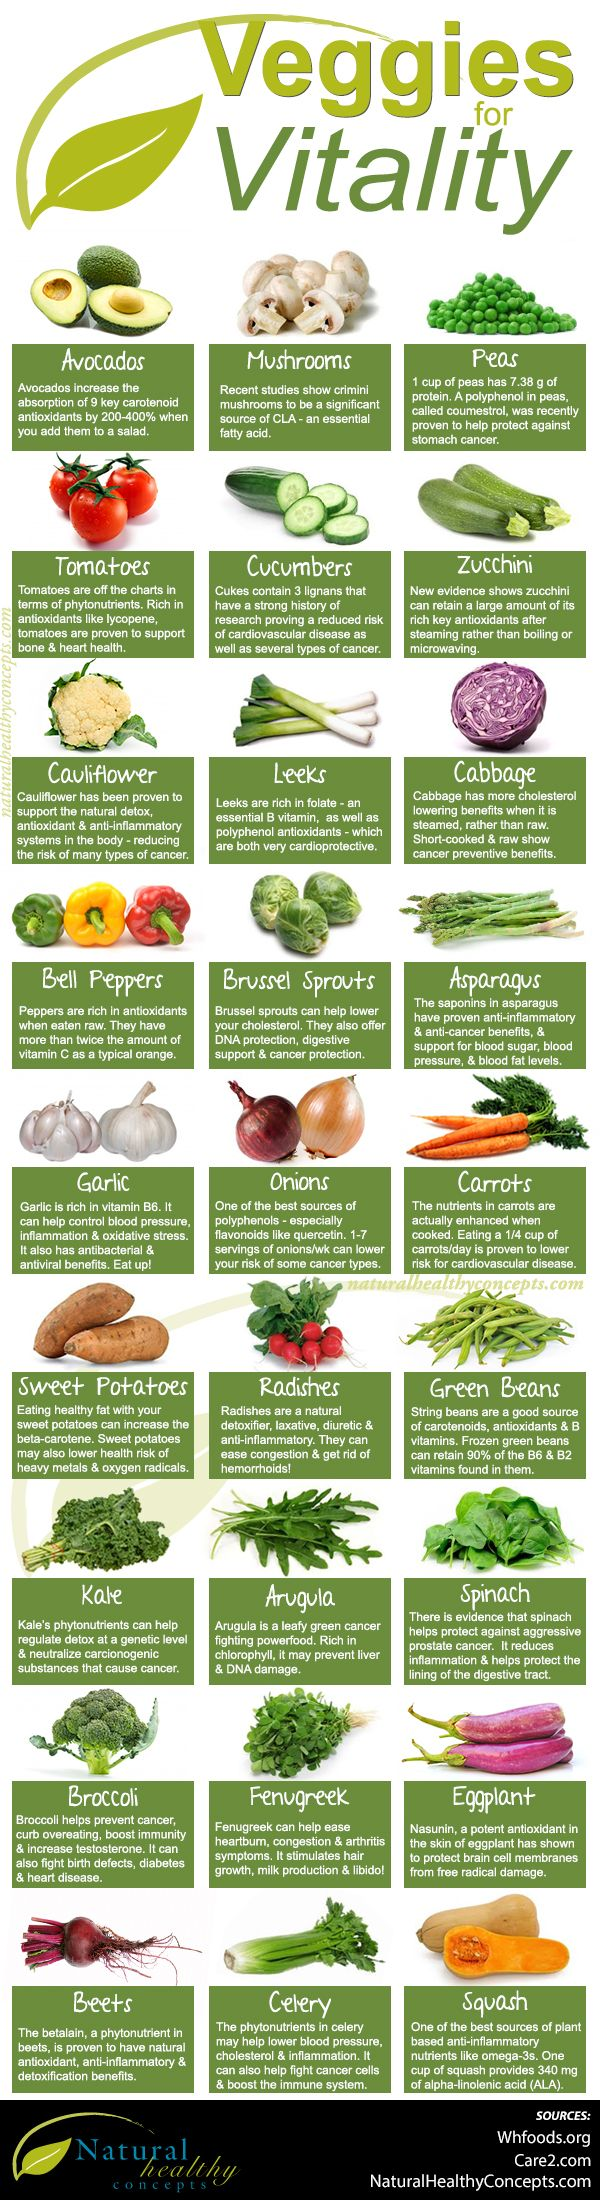 Veggies-for-Vitality - Natural Healthy Concepts